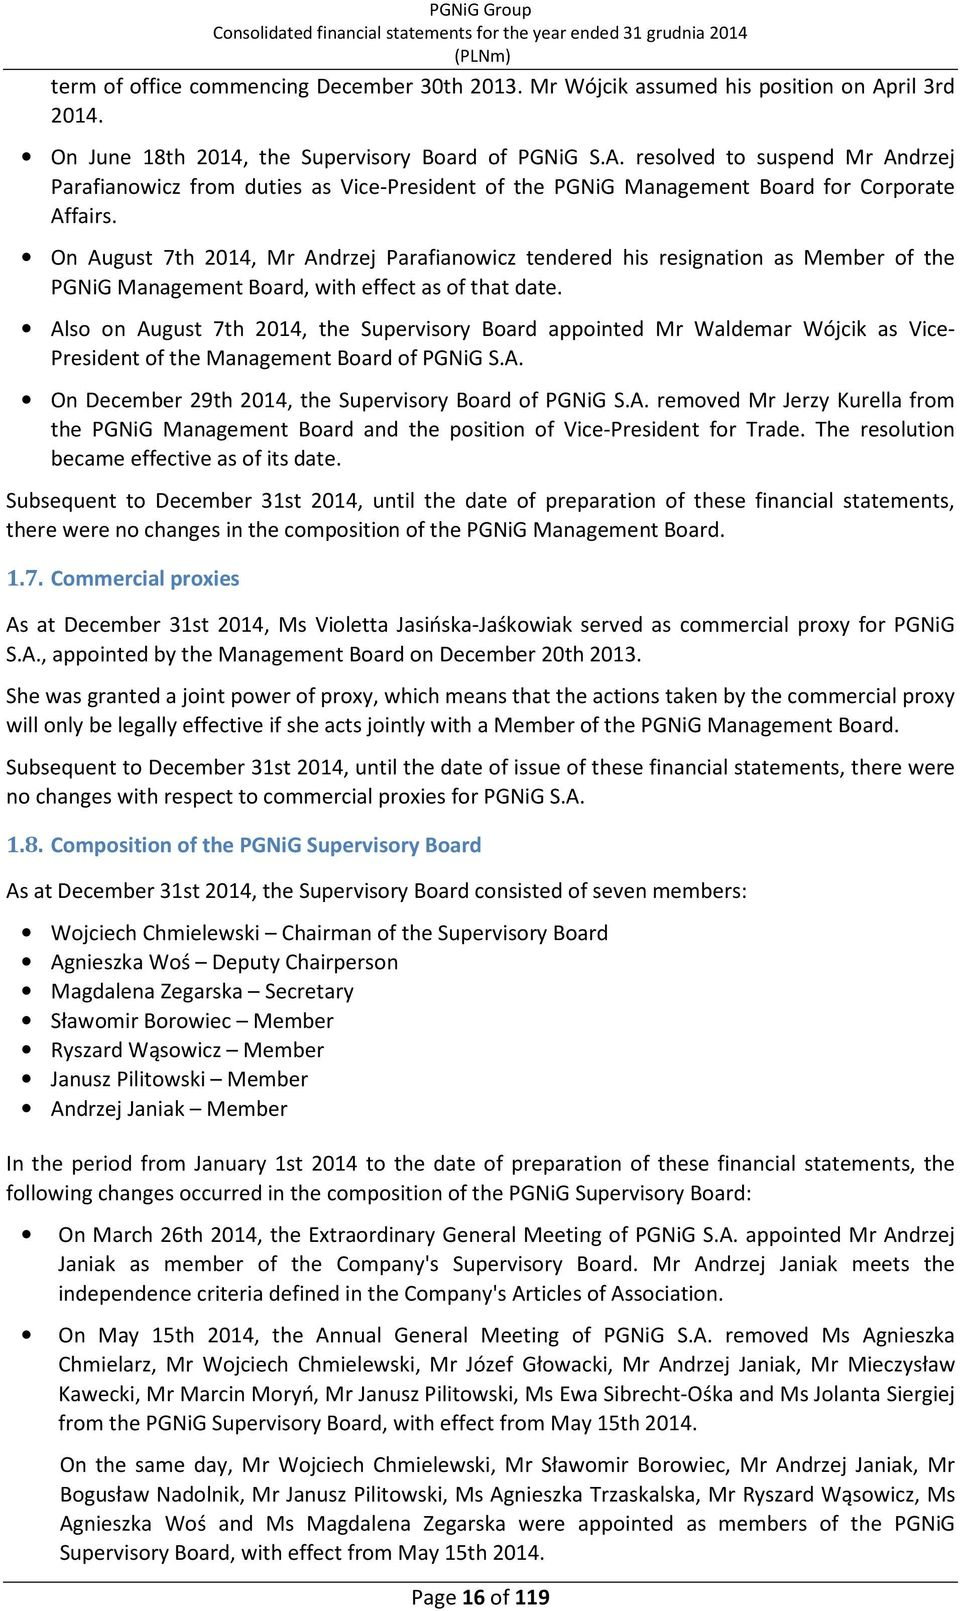 On August 7th 2014, Mr Andrzej Parafianowicz tendered his resignation as Member of the PGNiG Management Board, with effect as of that date.